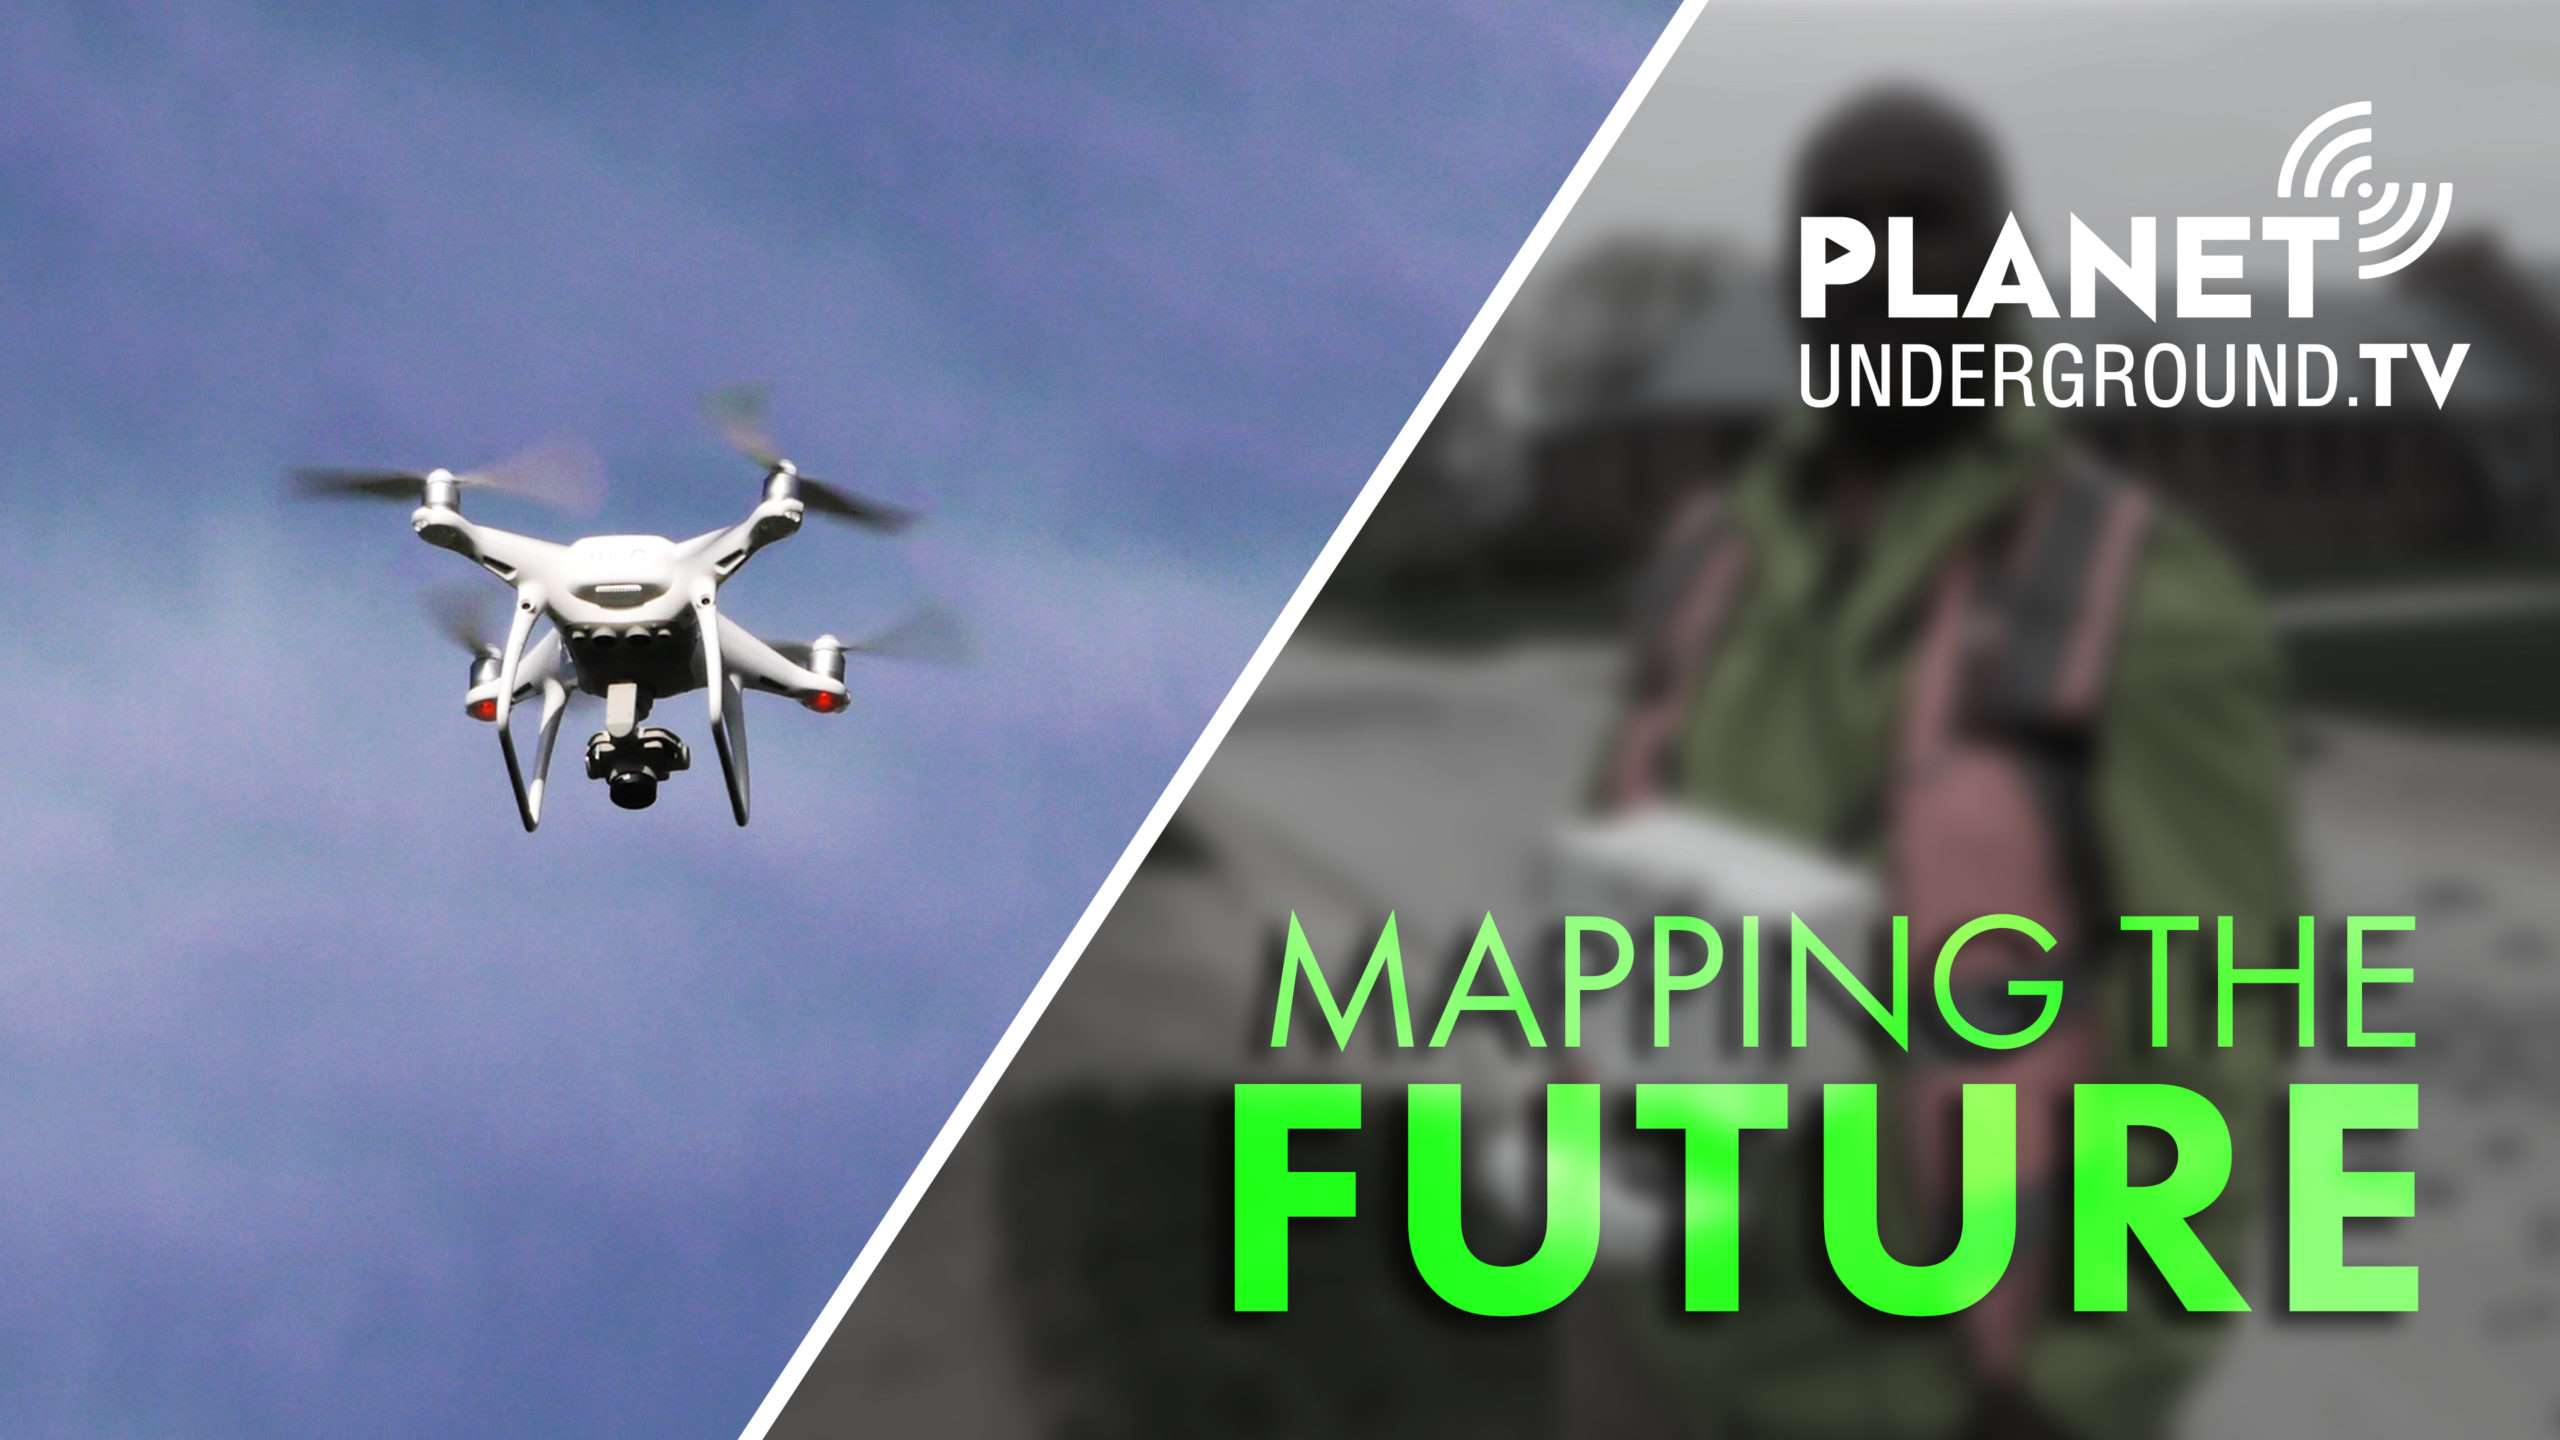 Mapping the Future: A PUTV Short